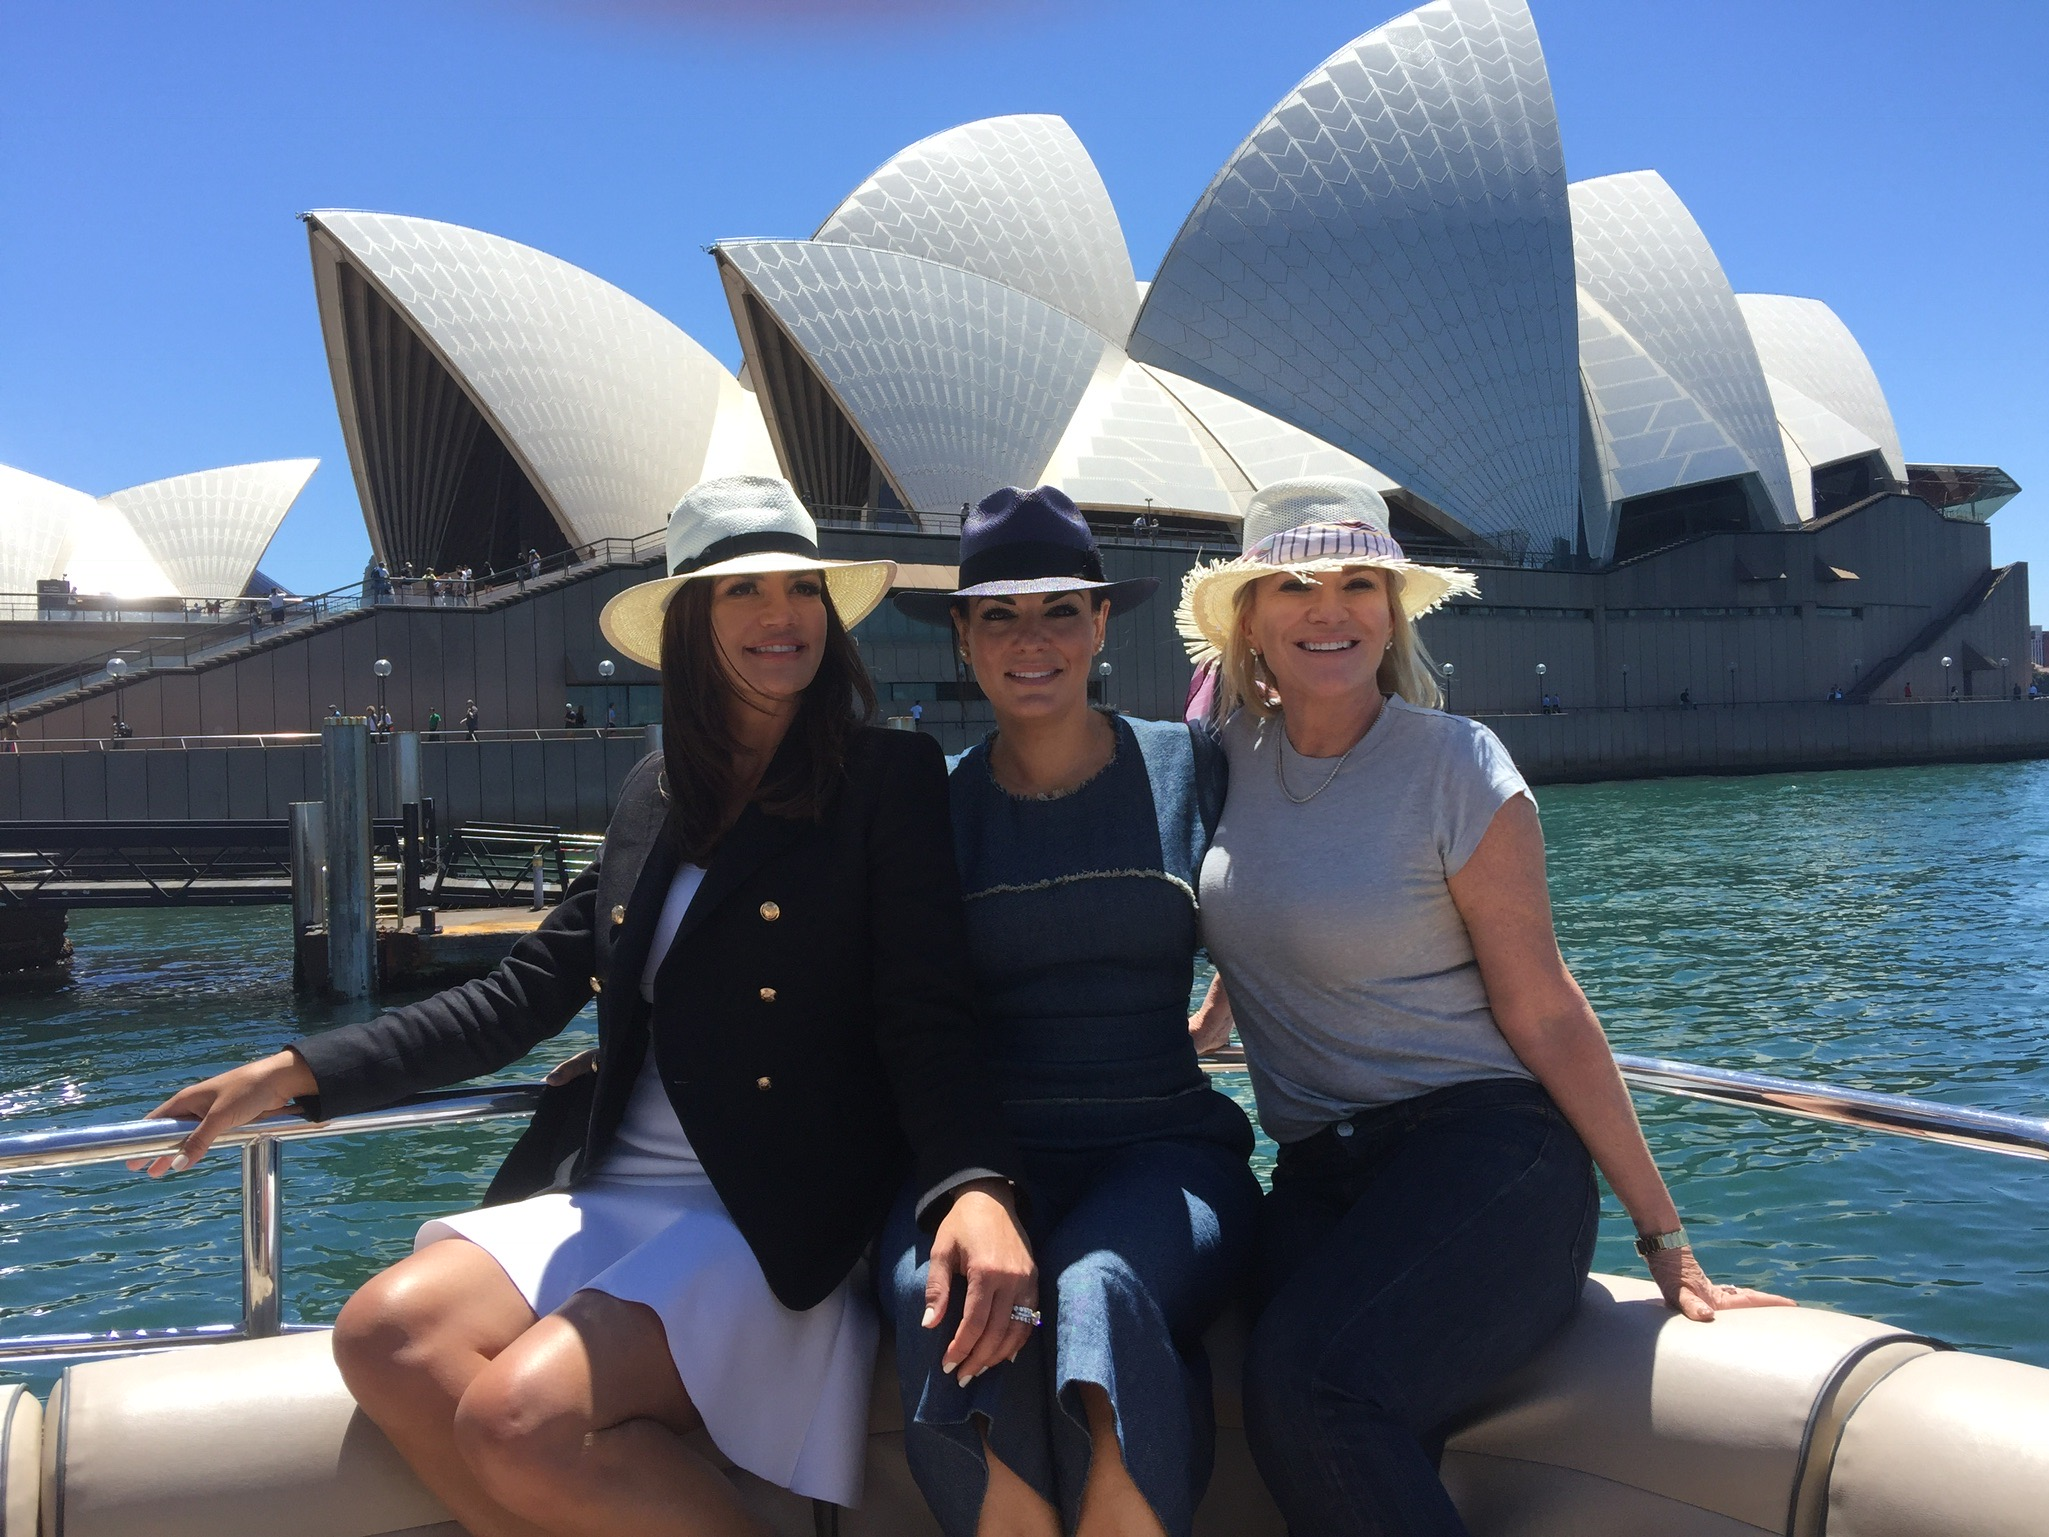 Krissy, Nicole and Victoria cruising Sydney Harbour - Behind the Scenes of The Real Housewives of Sydney Episode Seven